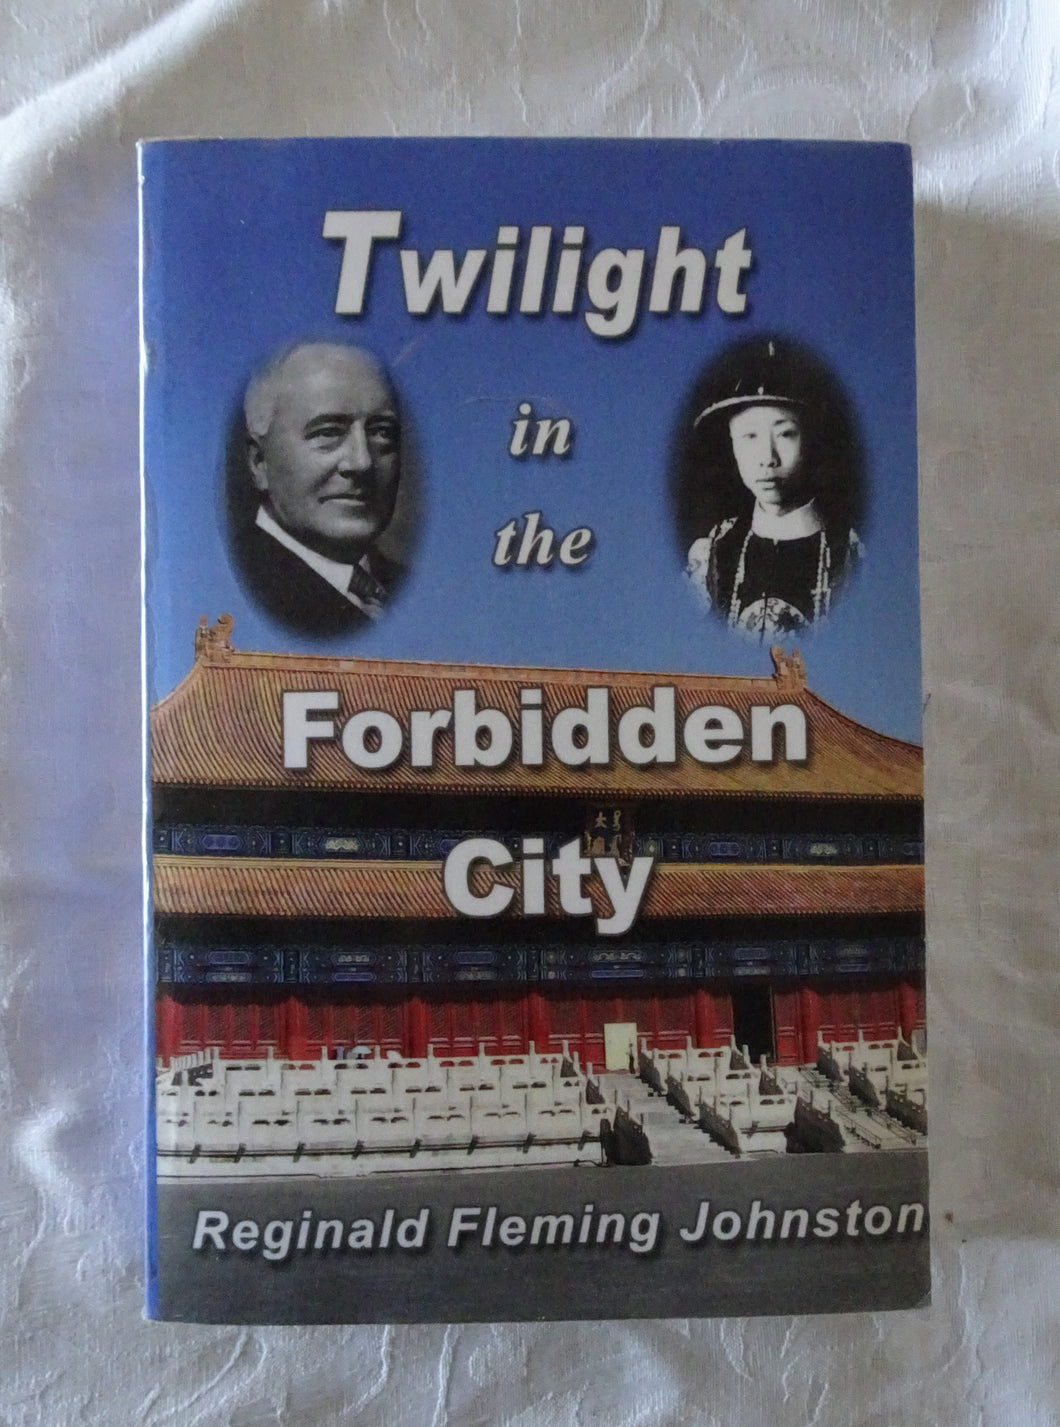 Twilight in the Forbidden City by Reginald Fleming Johnston